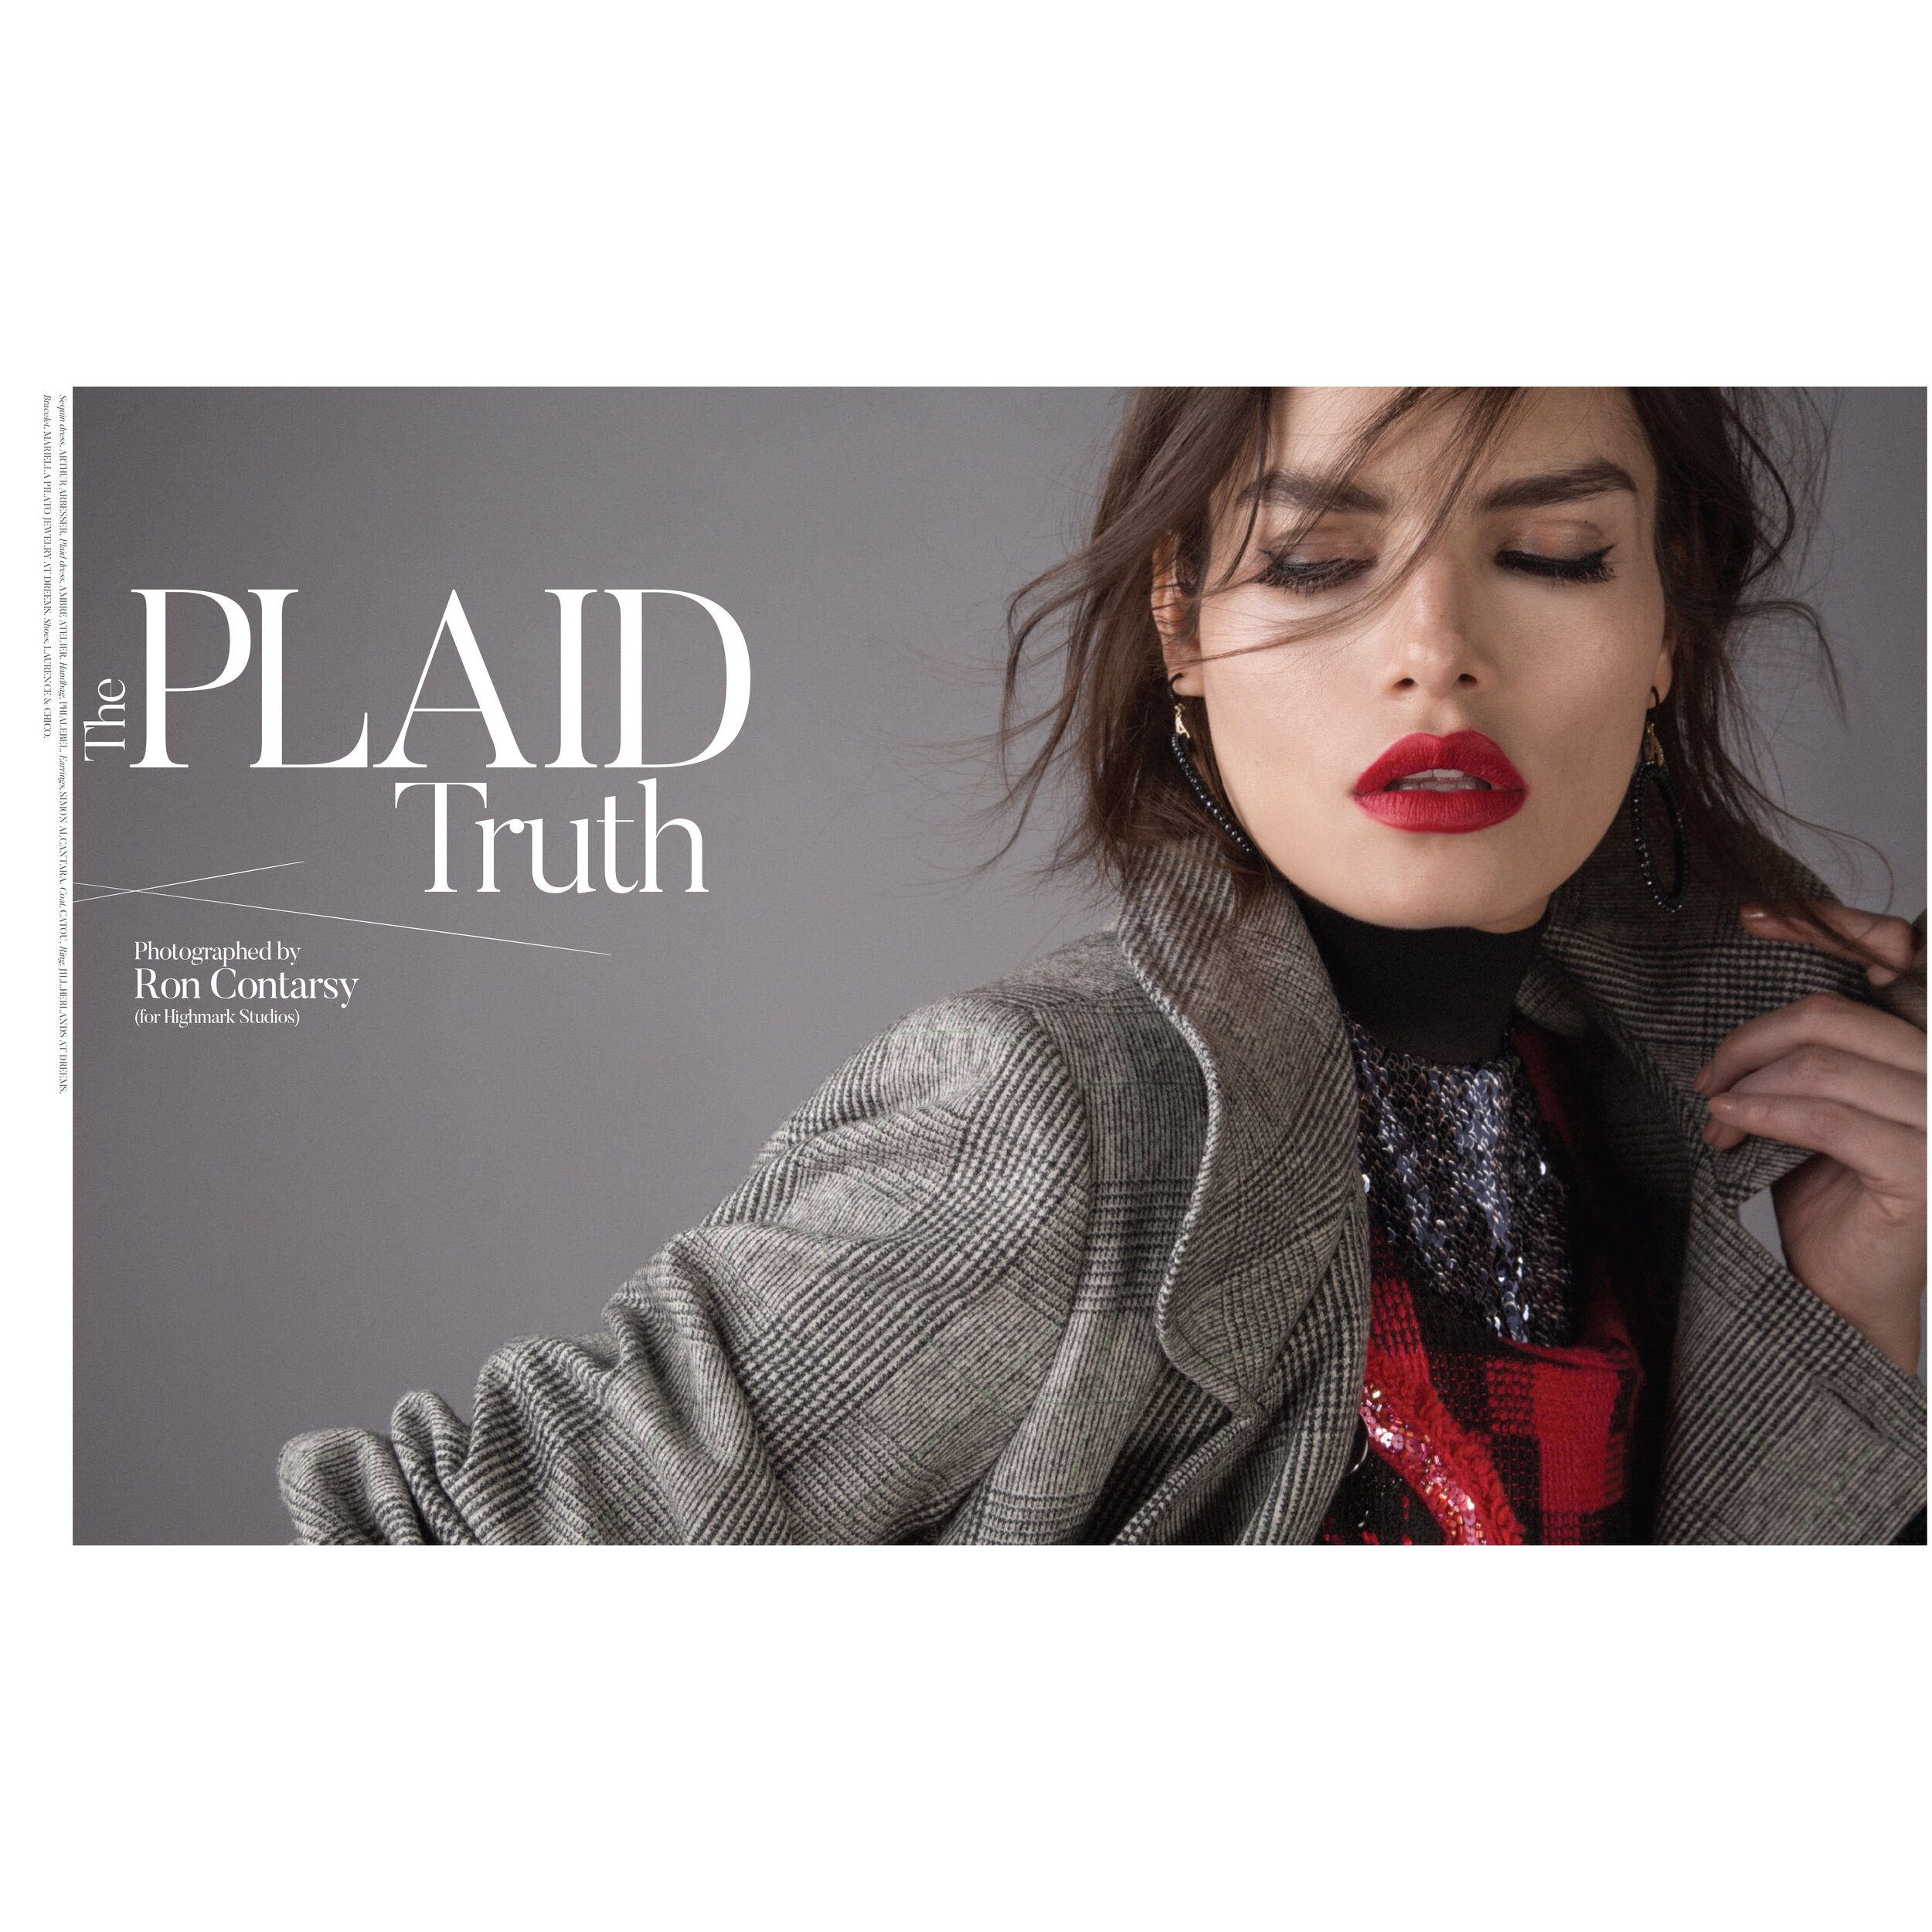 The Plaid Truth  Civilian Magazine @civillian_mag  Photography by Ron Contarsy  Styled by Alison Hernon  Model Nohemi Hermosillo  Hair and Makeup Vassillis Kokkindis  Assistant Stylist Ayoka Lukas